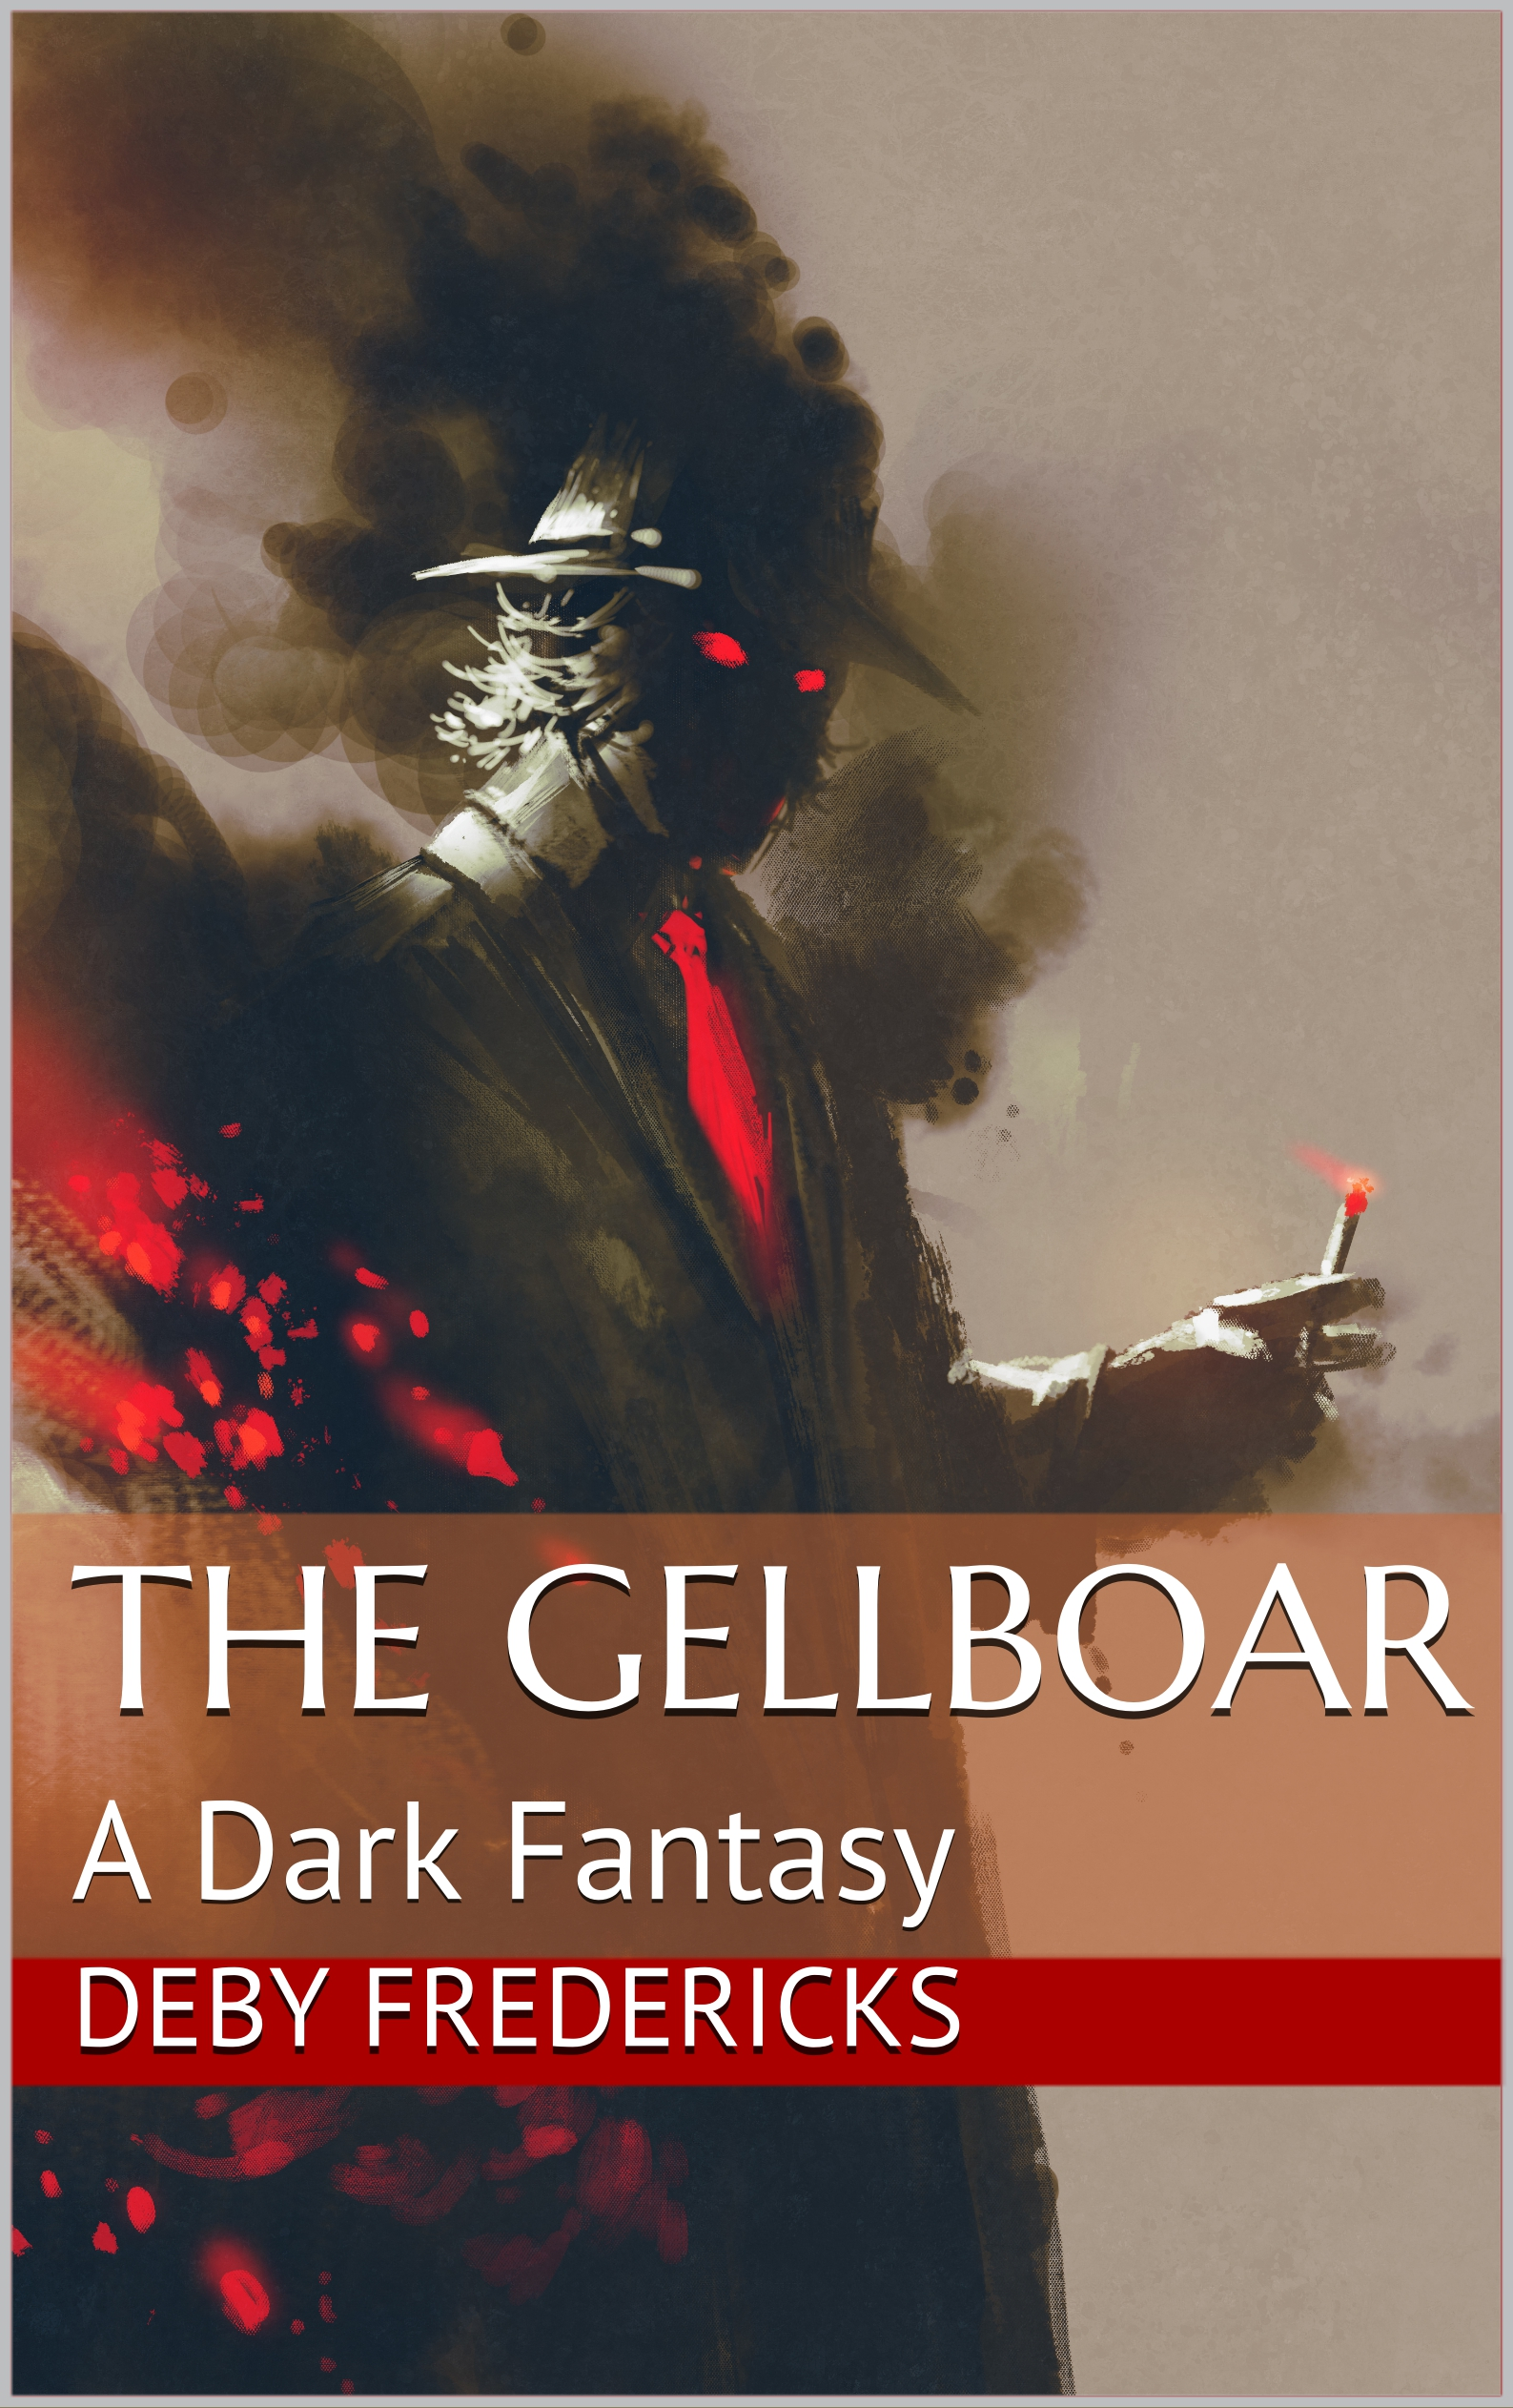 The Gellboar